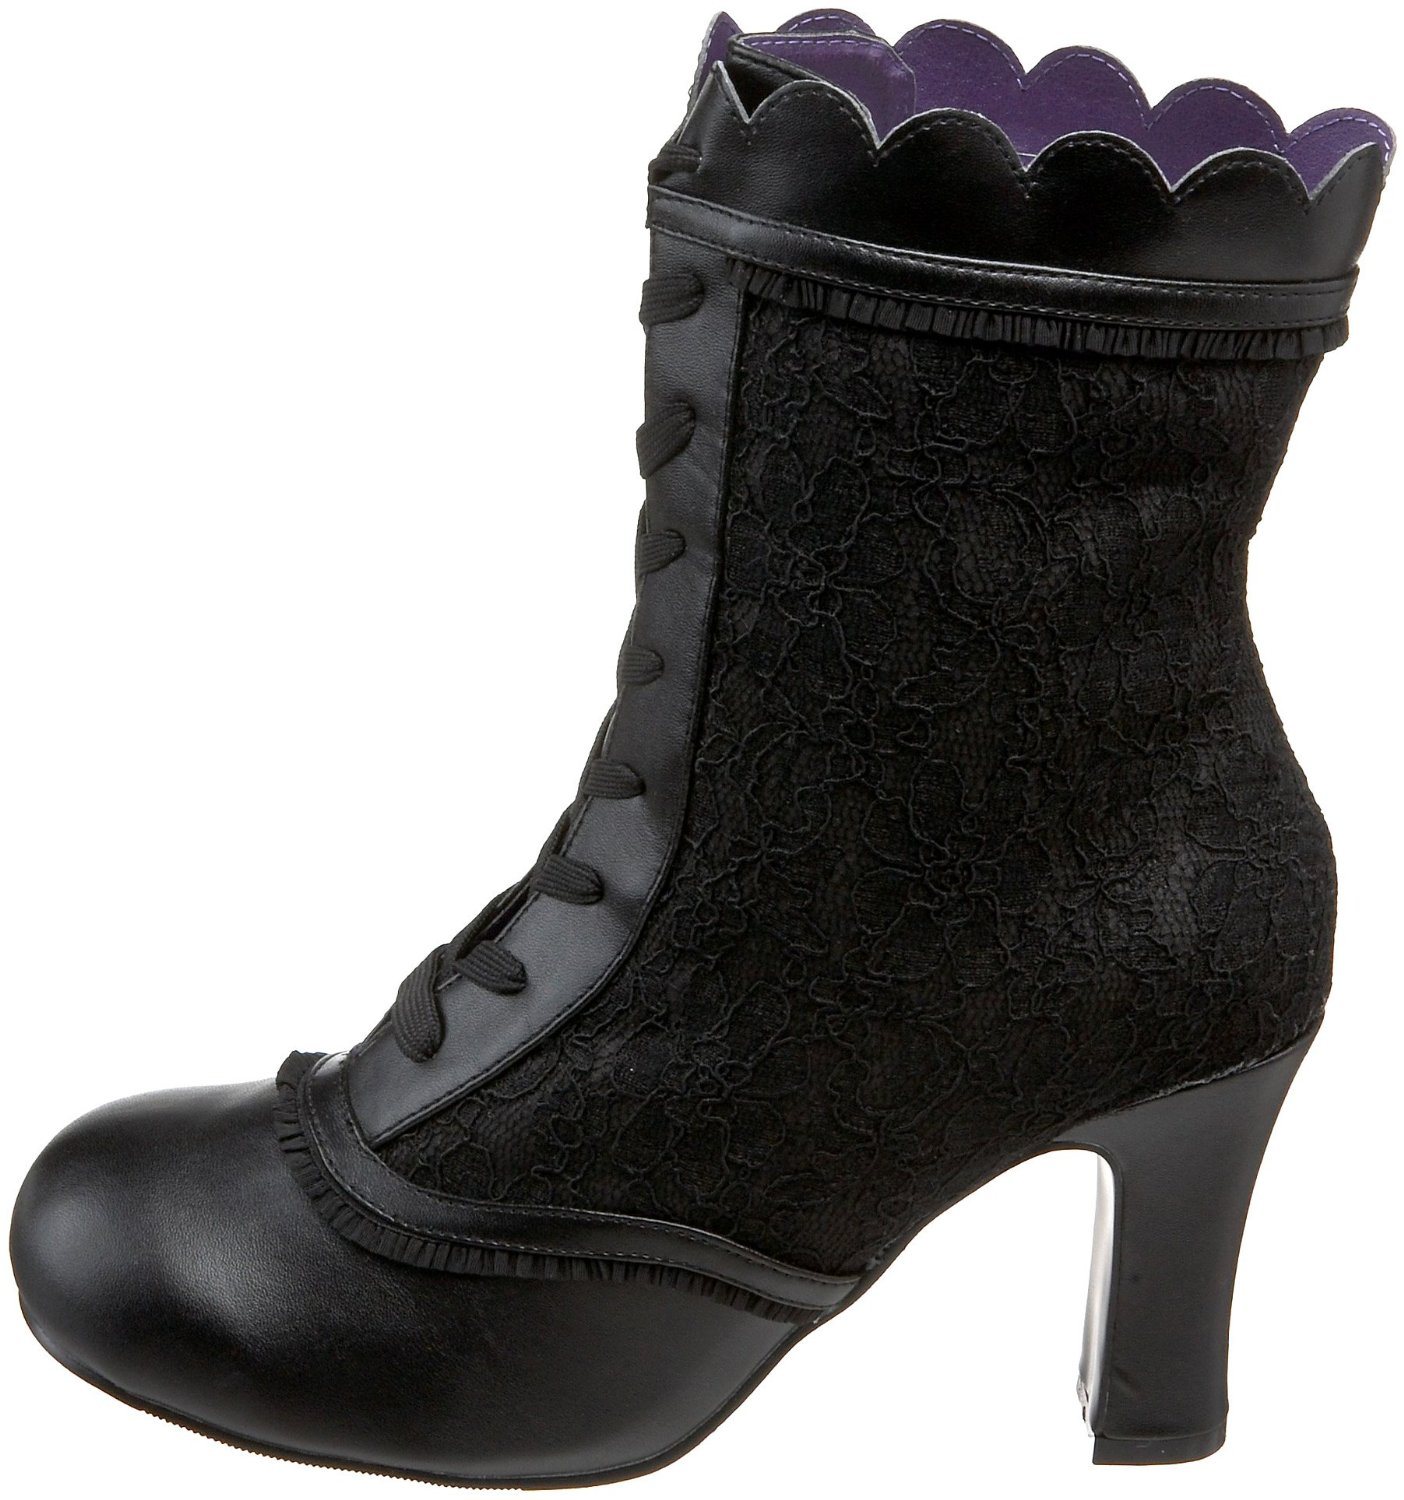 Vegan black lace steampunk ankle boots